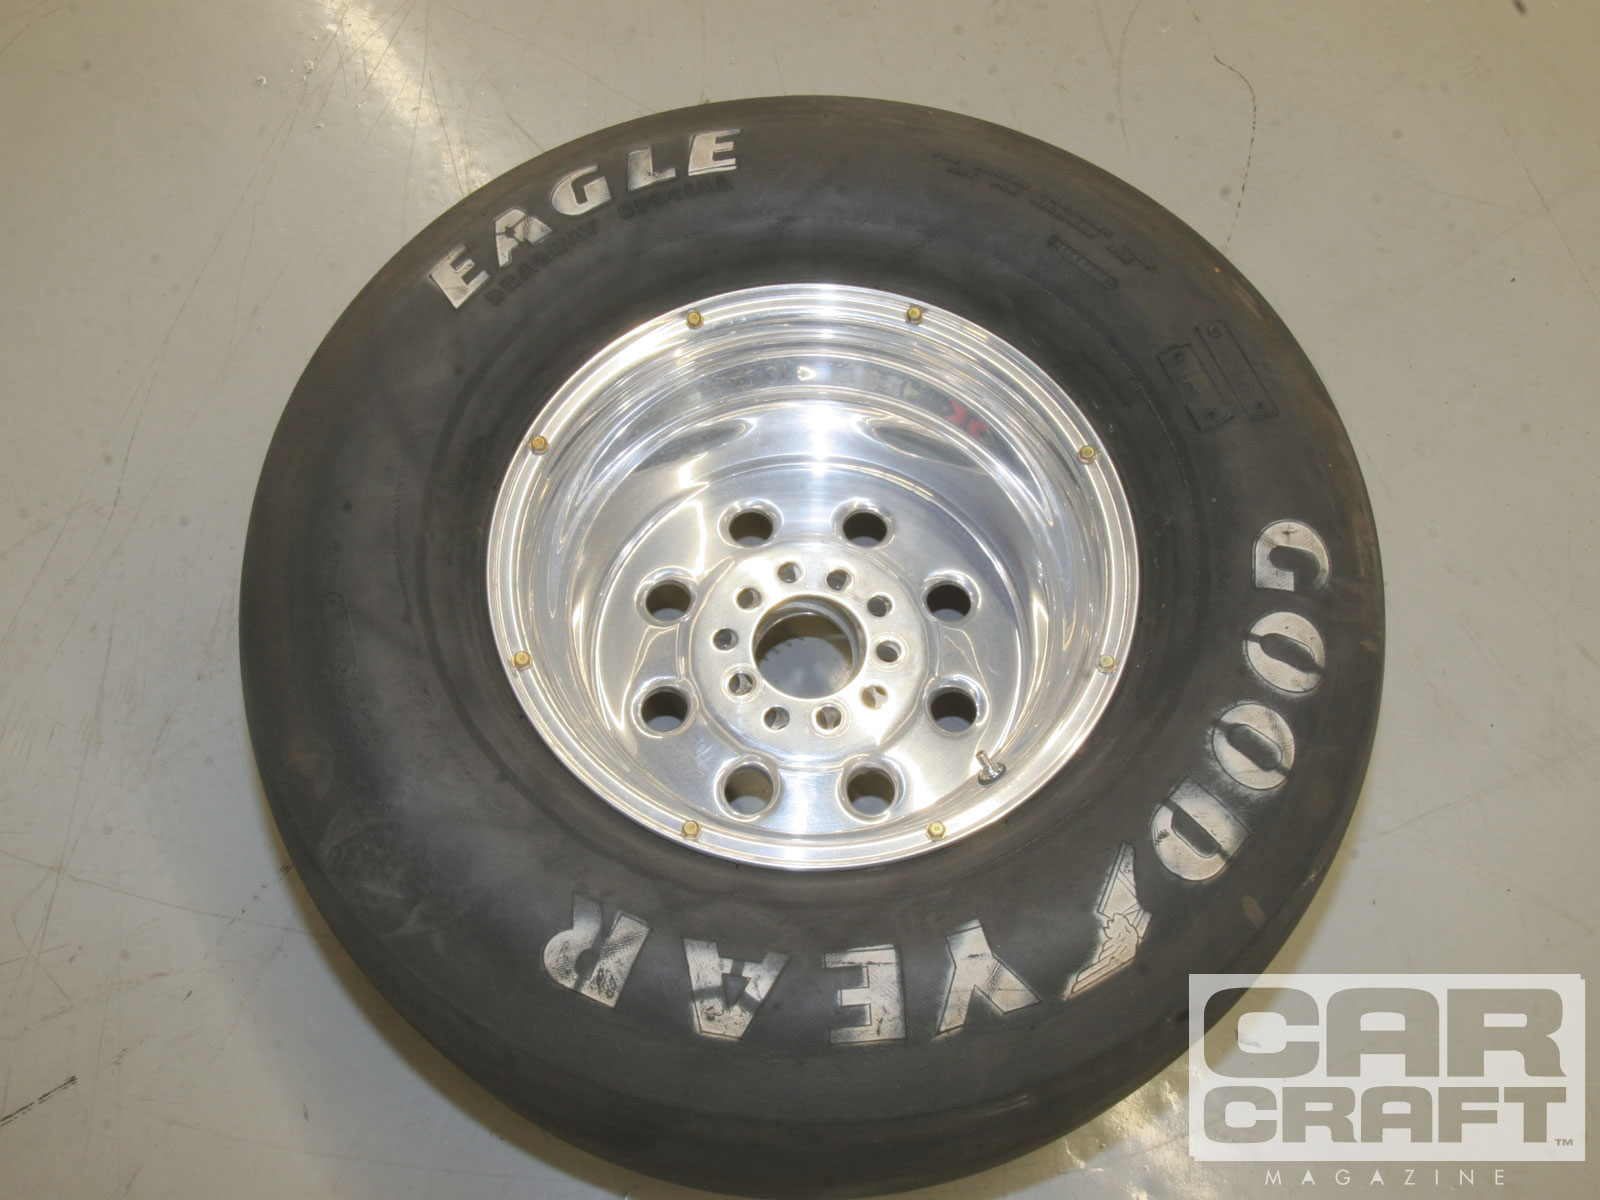 The car came with a set of early Weld Ultralite wheels with drilled and screwed beads. They are light, but there are better ways to lock rims. More on that in the coming months.